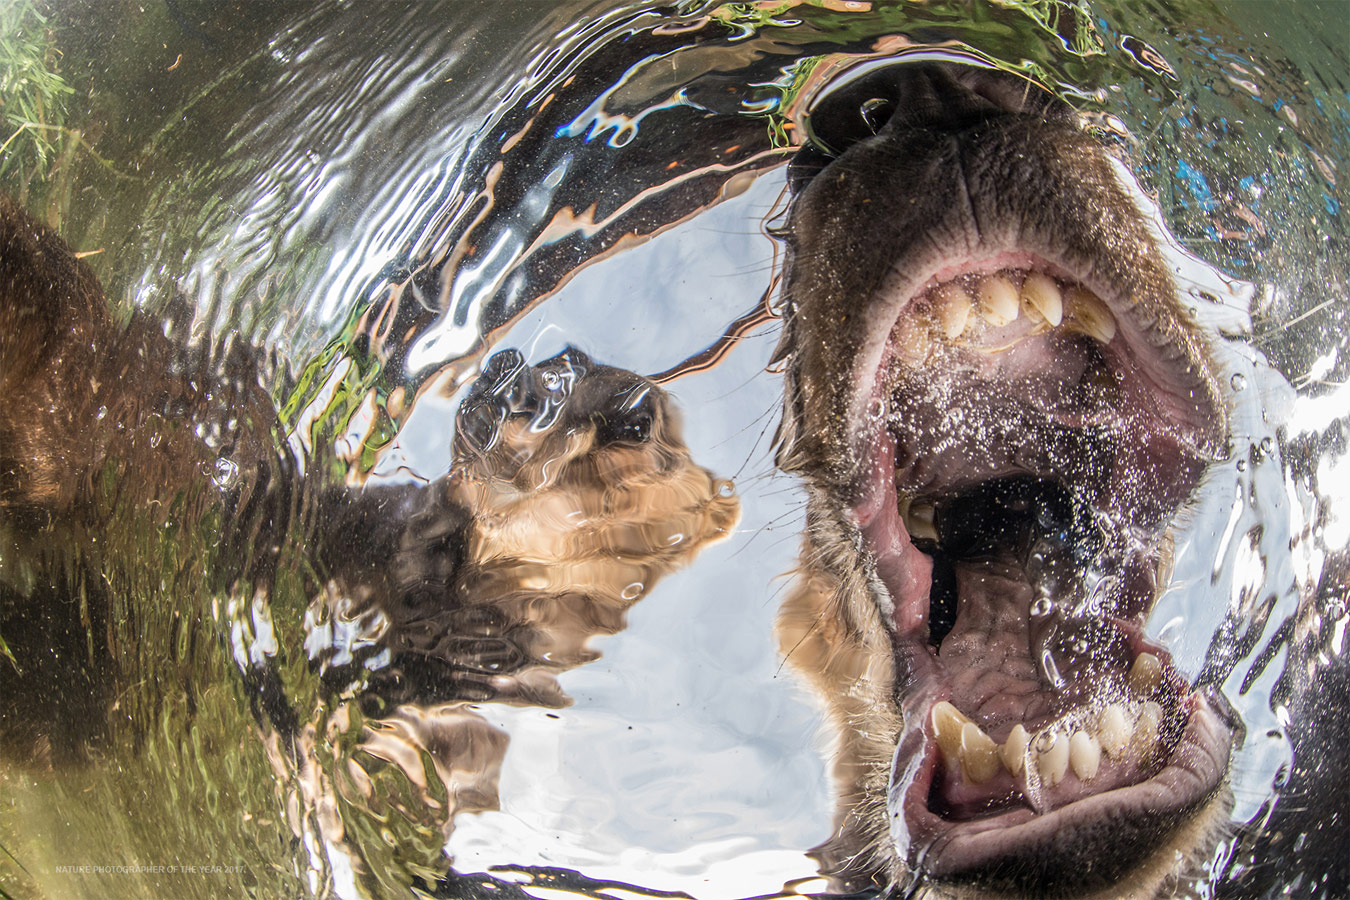 Curios bears cubs, © Mike Korostelev, Absolute Winner of the Contest, Nature Photographer of the Year